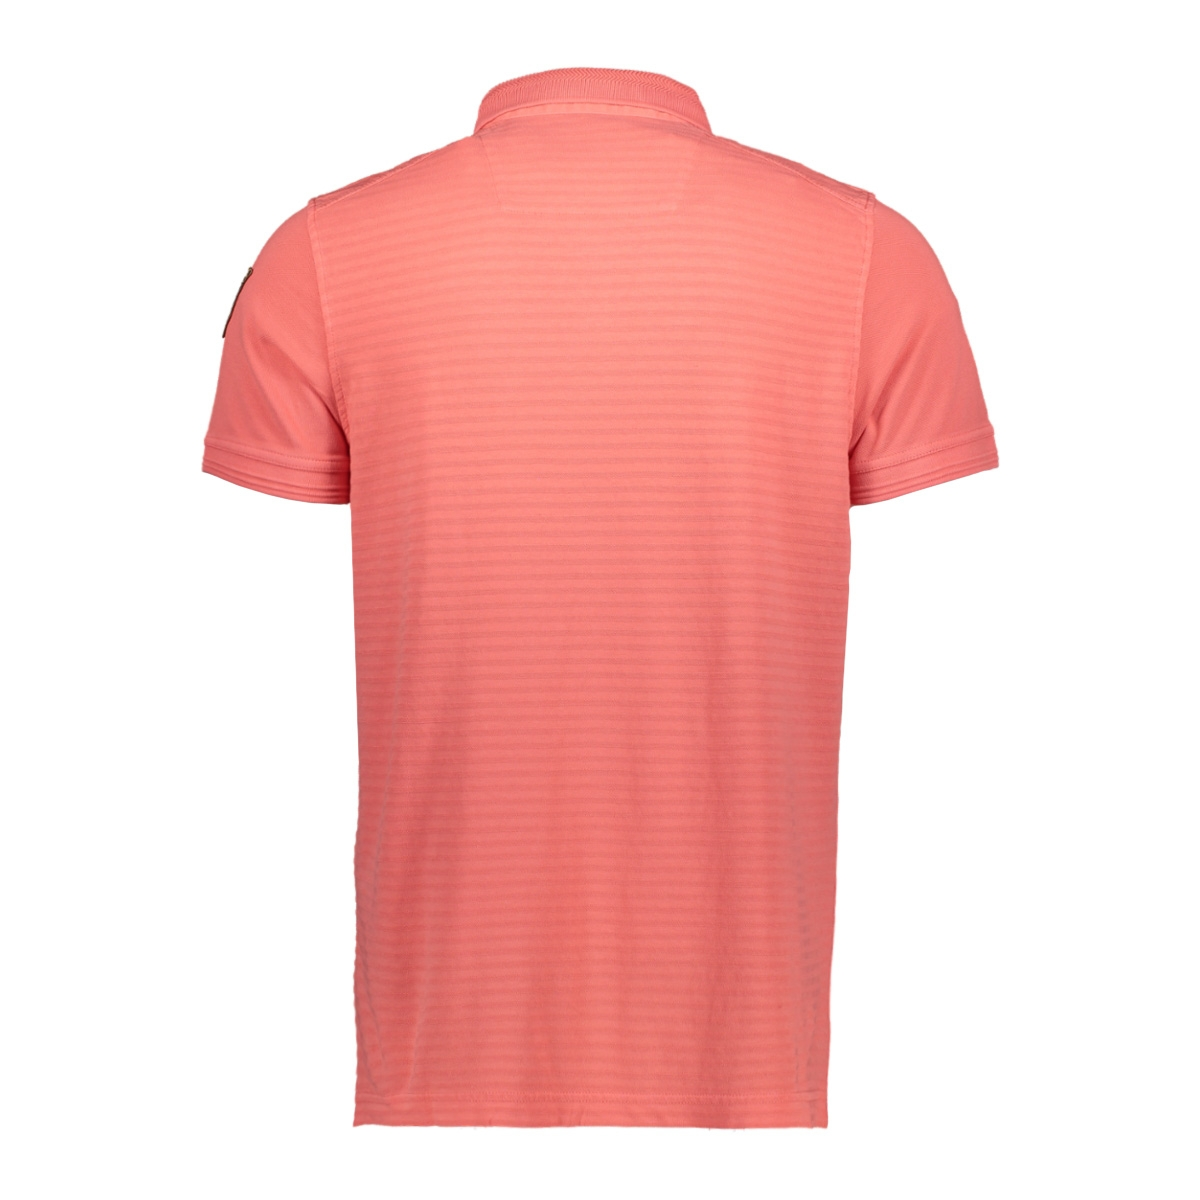 rugged pique short sleeve polo ppss202862 pme legend polo 3068